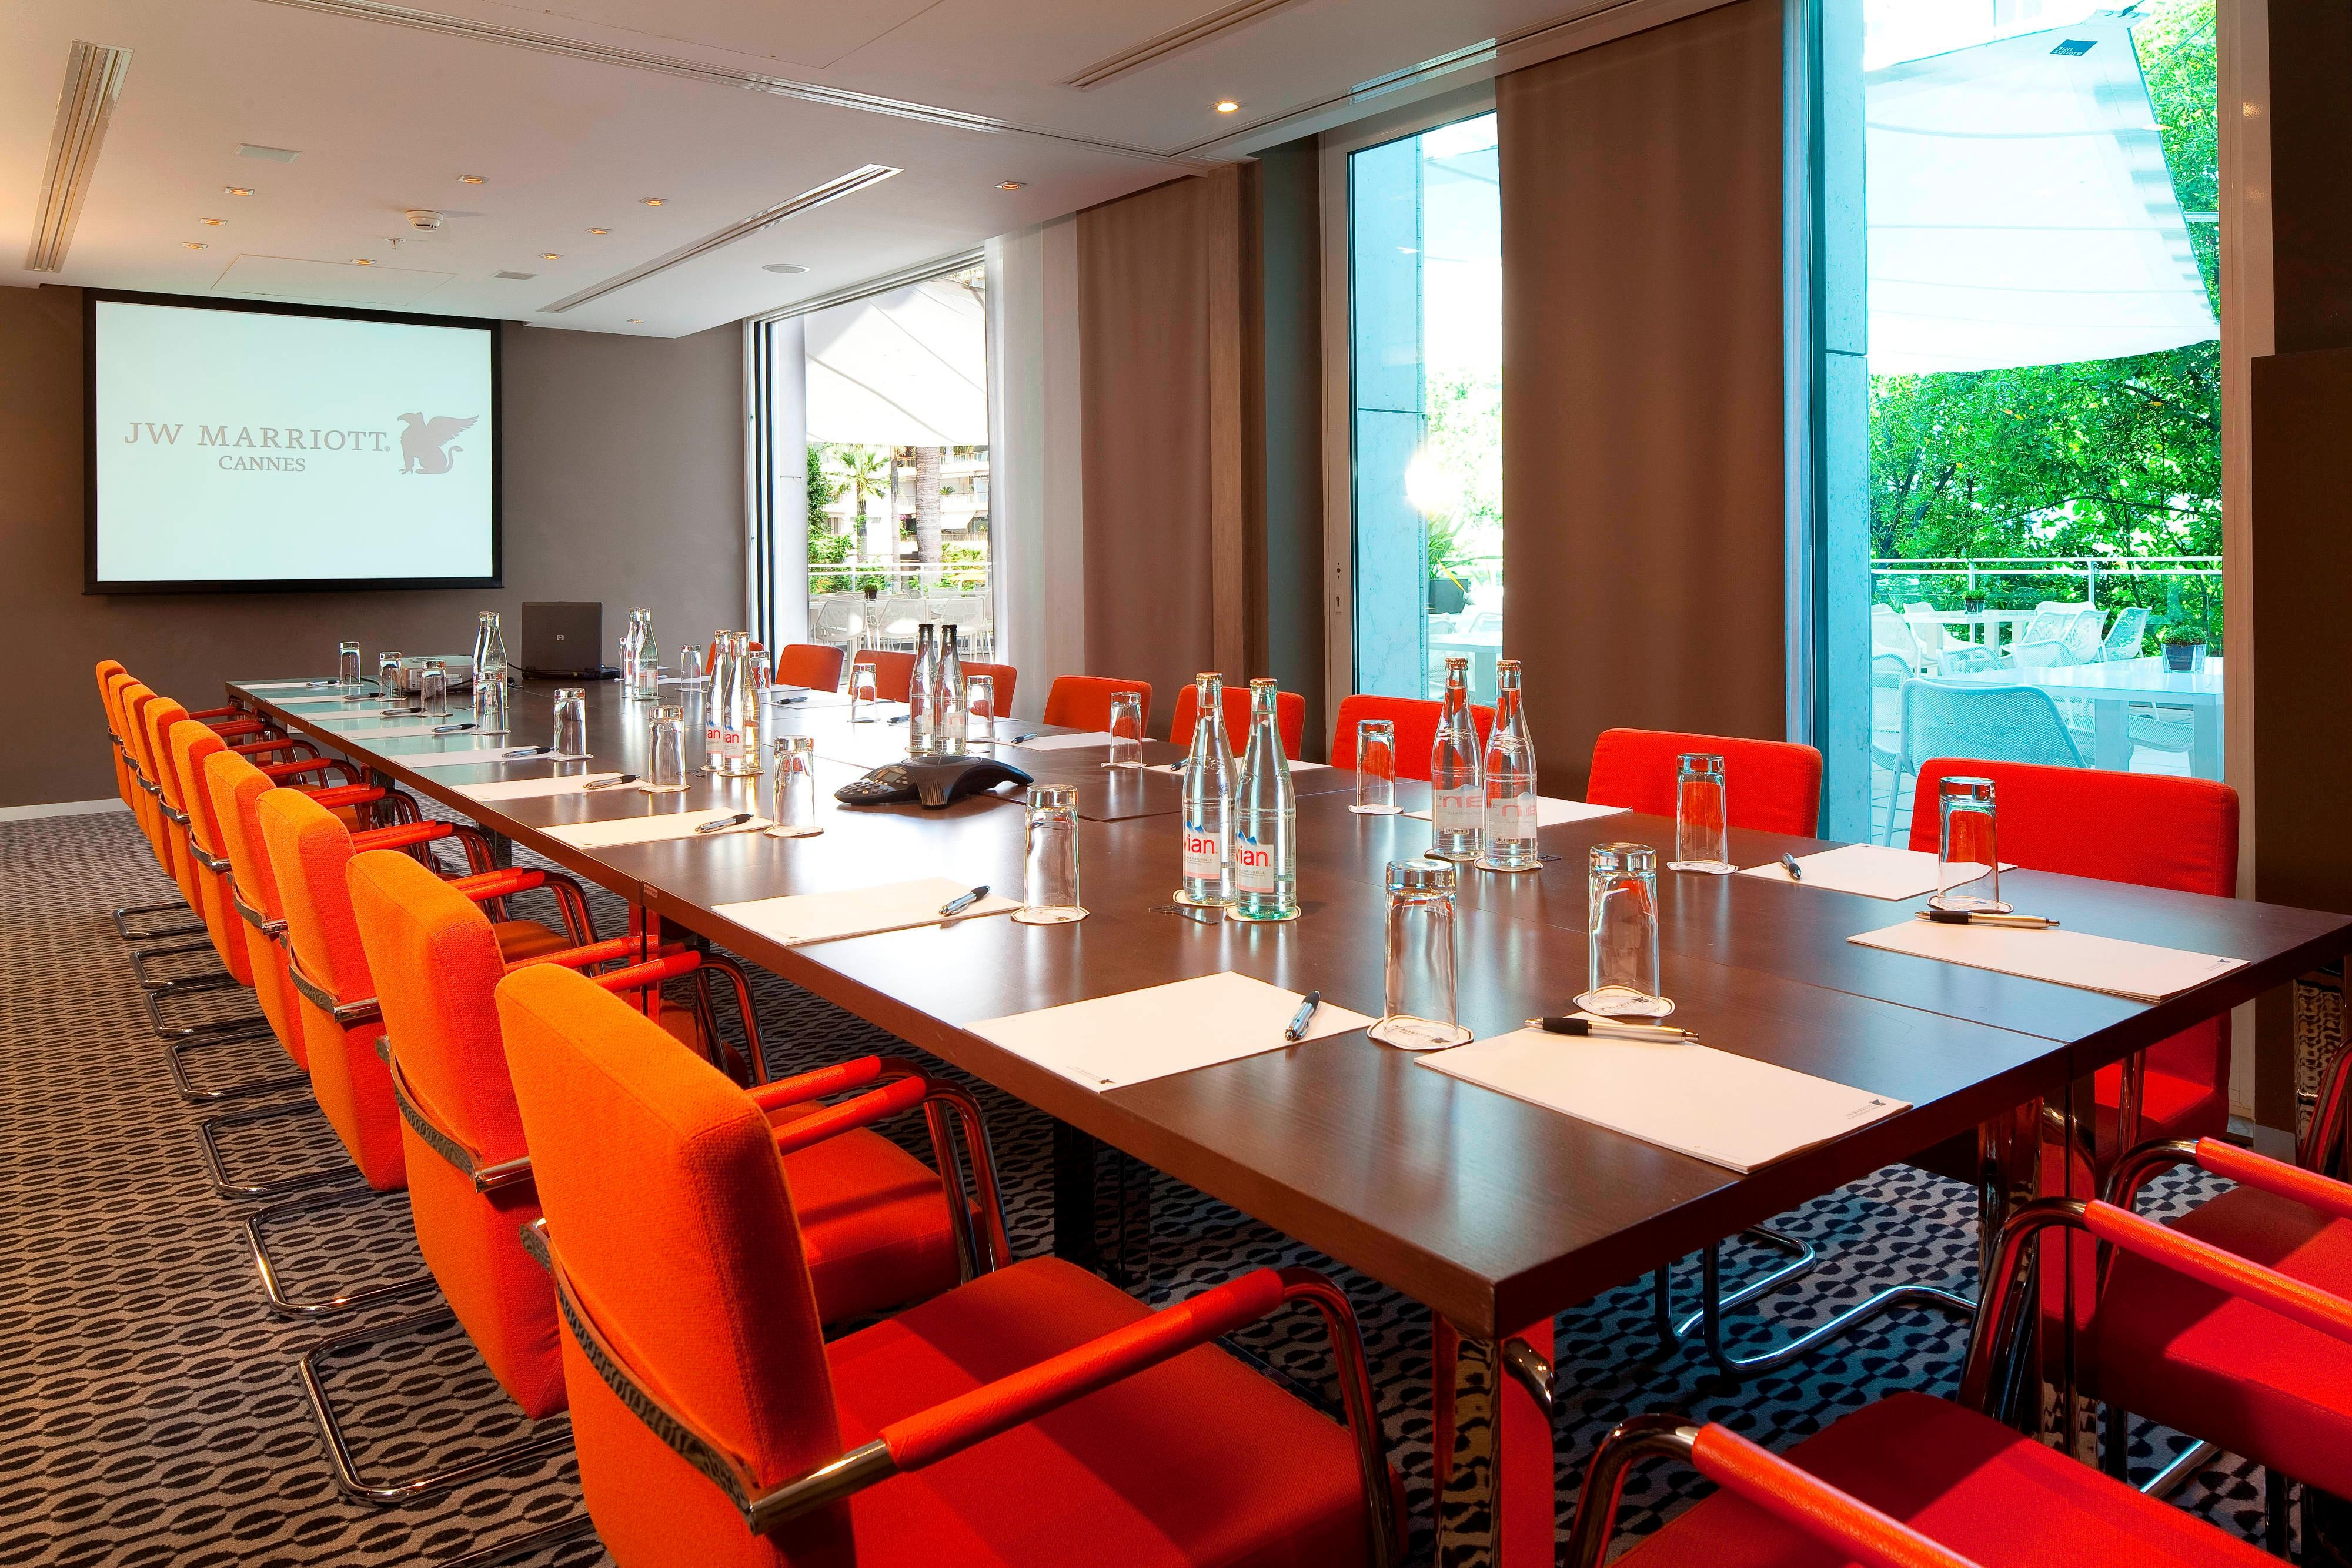 Cannes meeting rooms